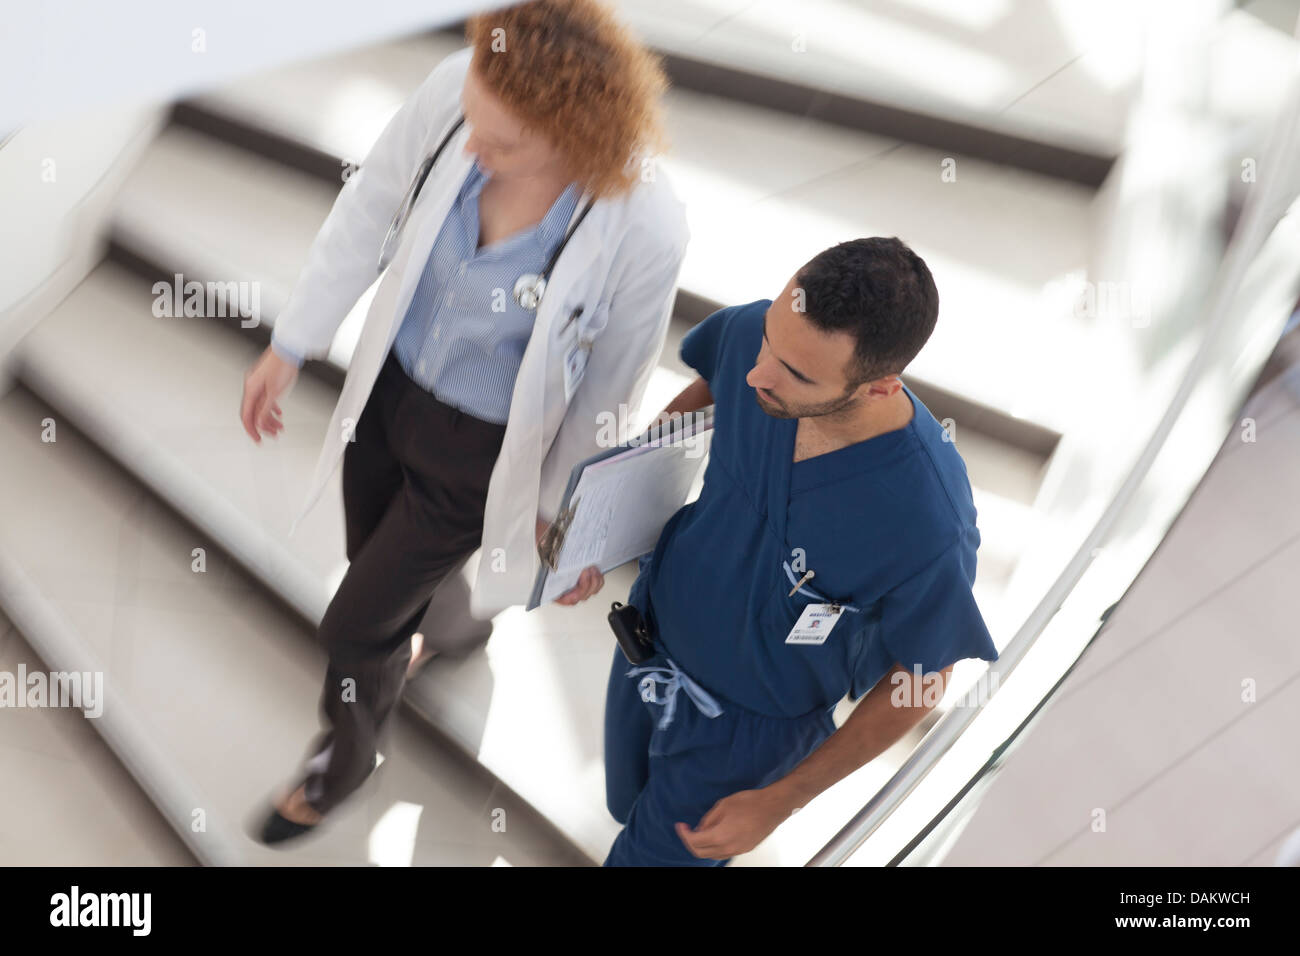 Doctor and nurse walking on hospital steps Stock Photo